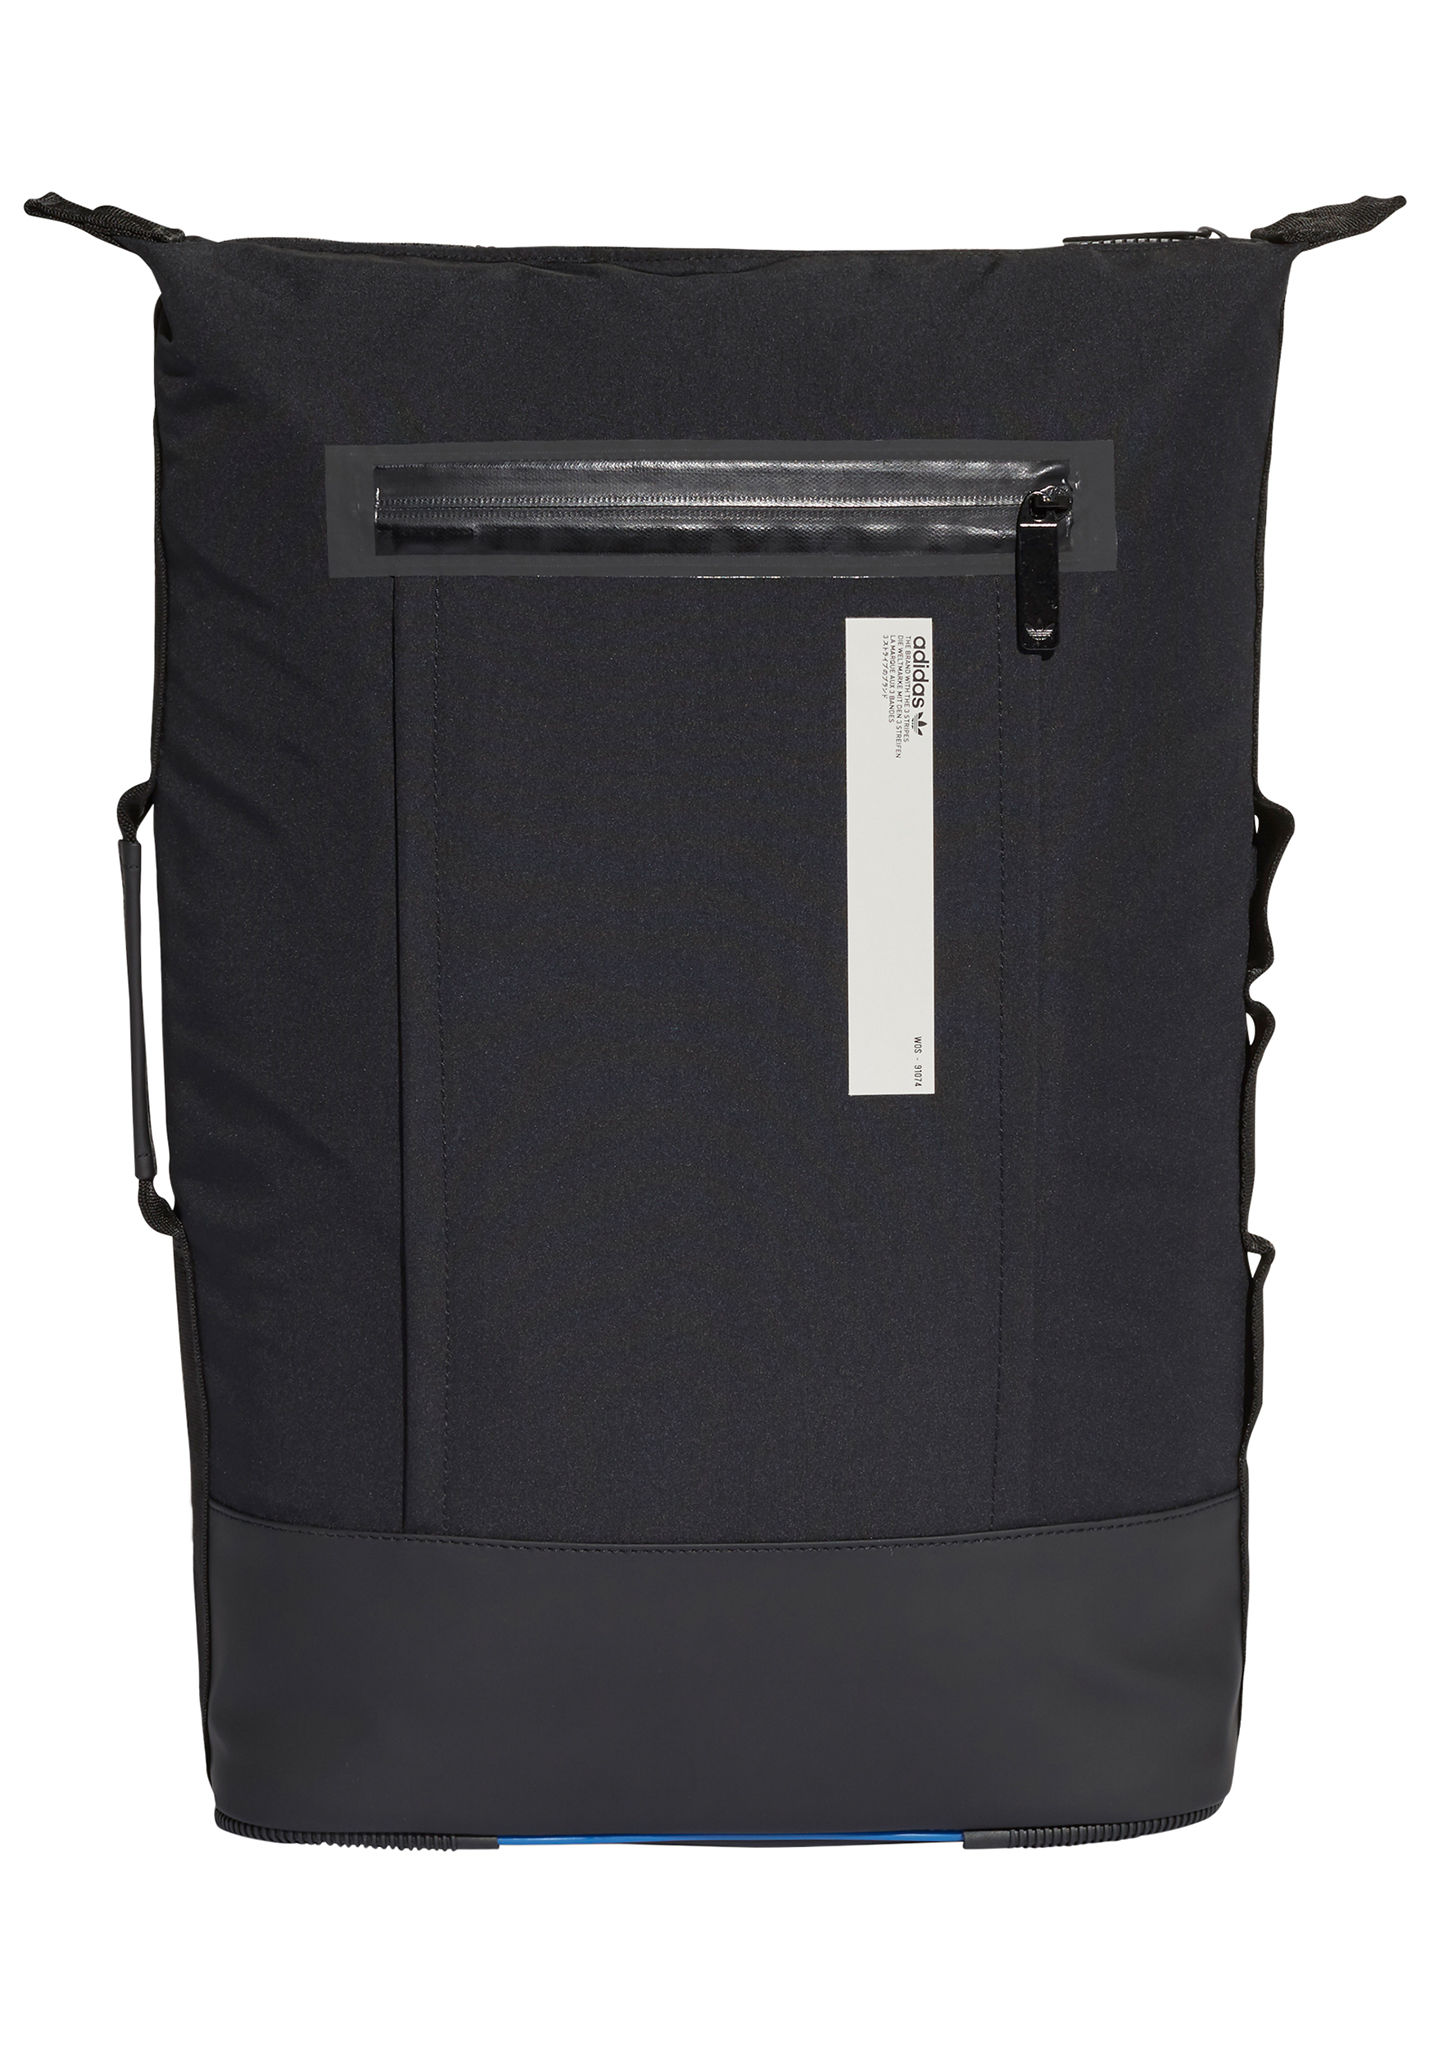 ADIDAS ORIGINALS Nmd S - Backpack - Black - Planet Sports 1d3c58119ce34